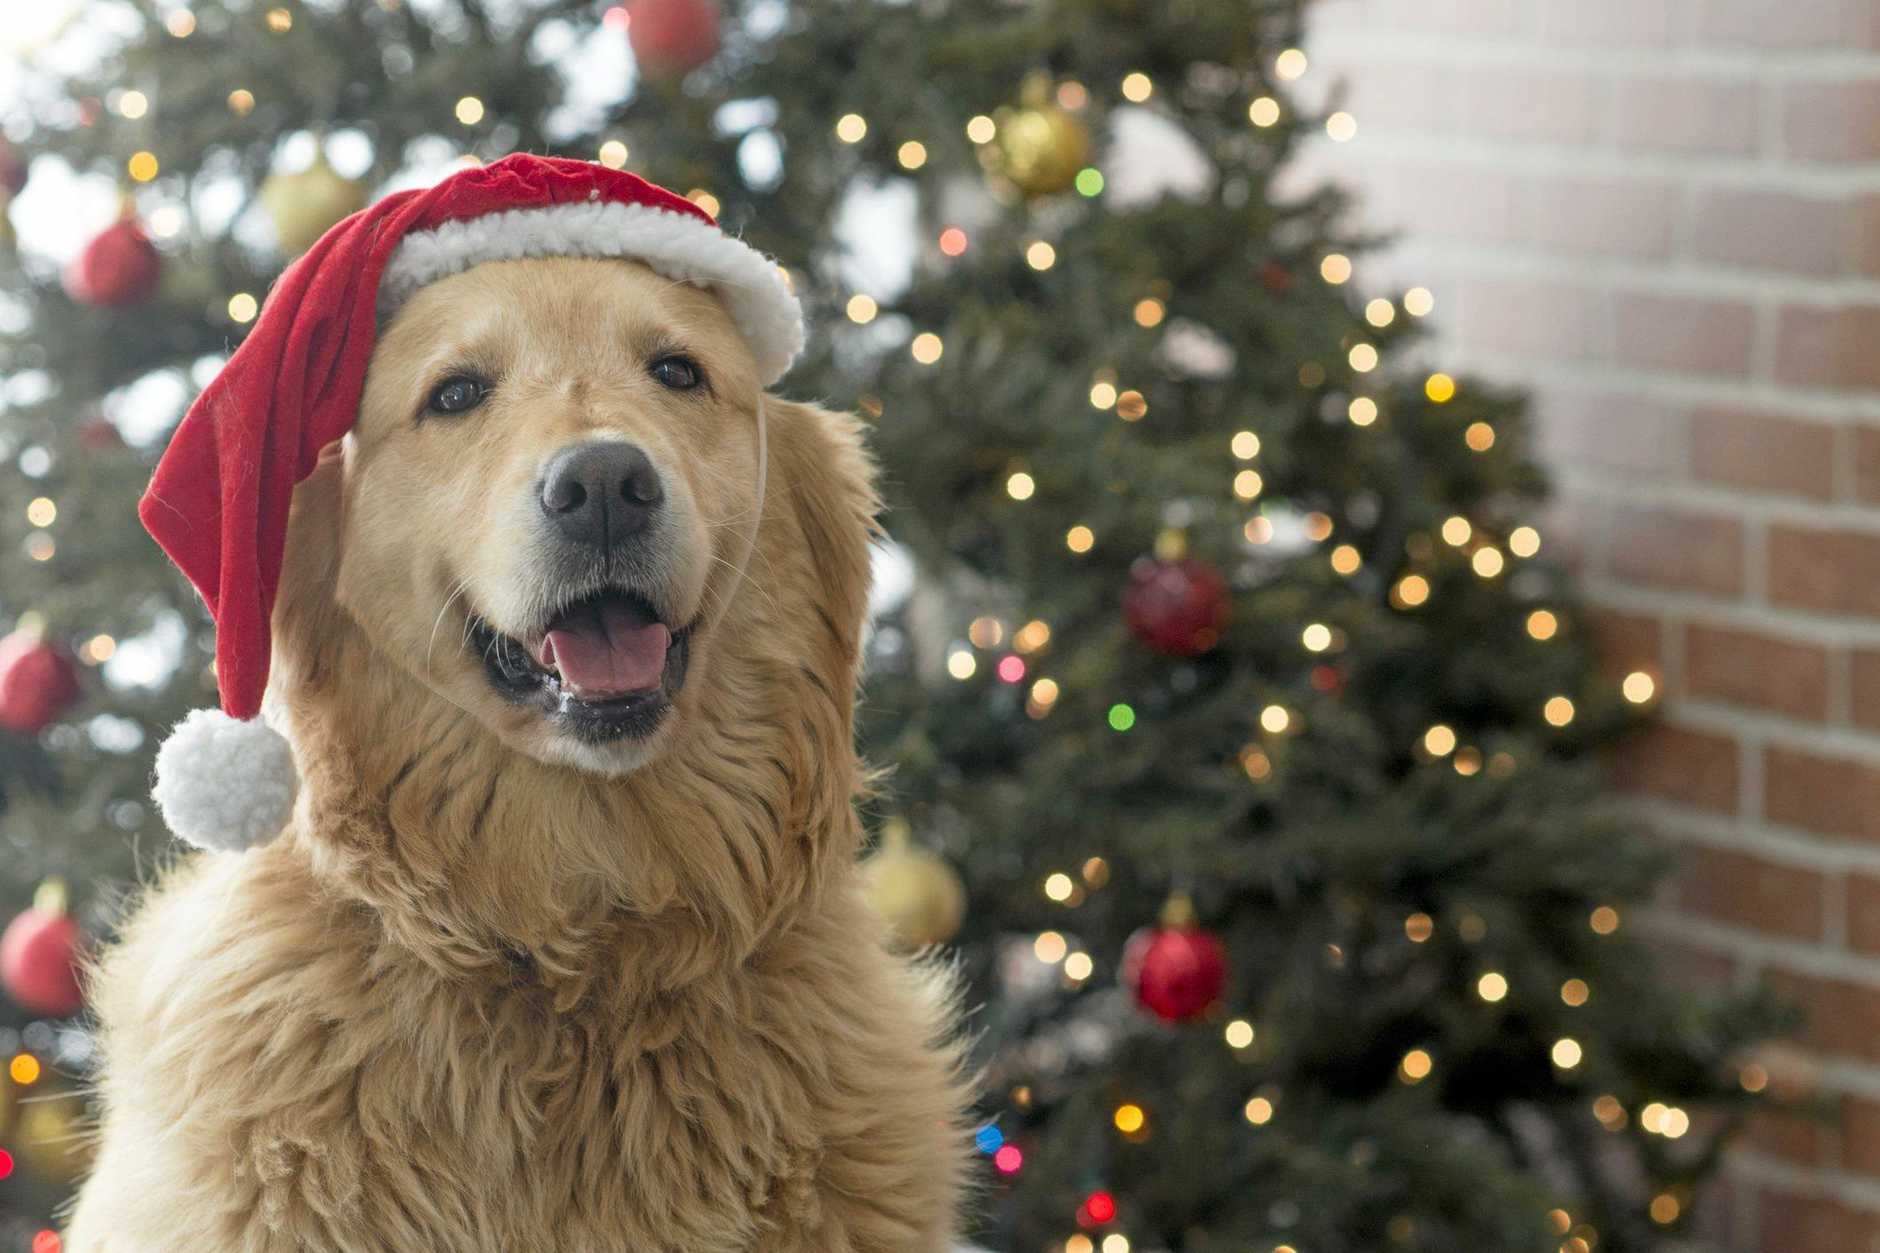 A cute golden retriever dog is wearing a santa hat during Christmas. It is sitting and looking happy. A Christmas tree with lights is in the background.